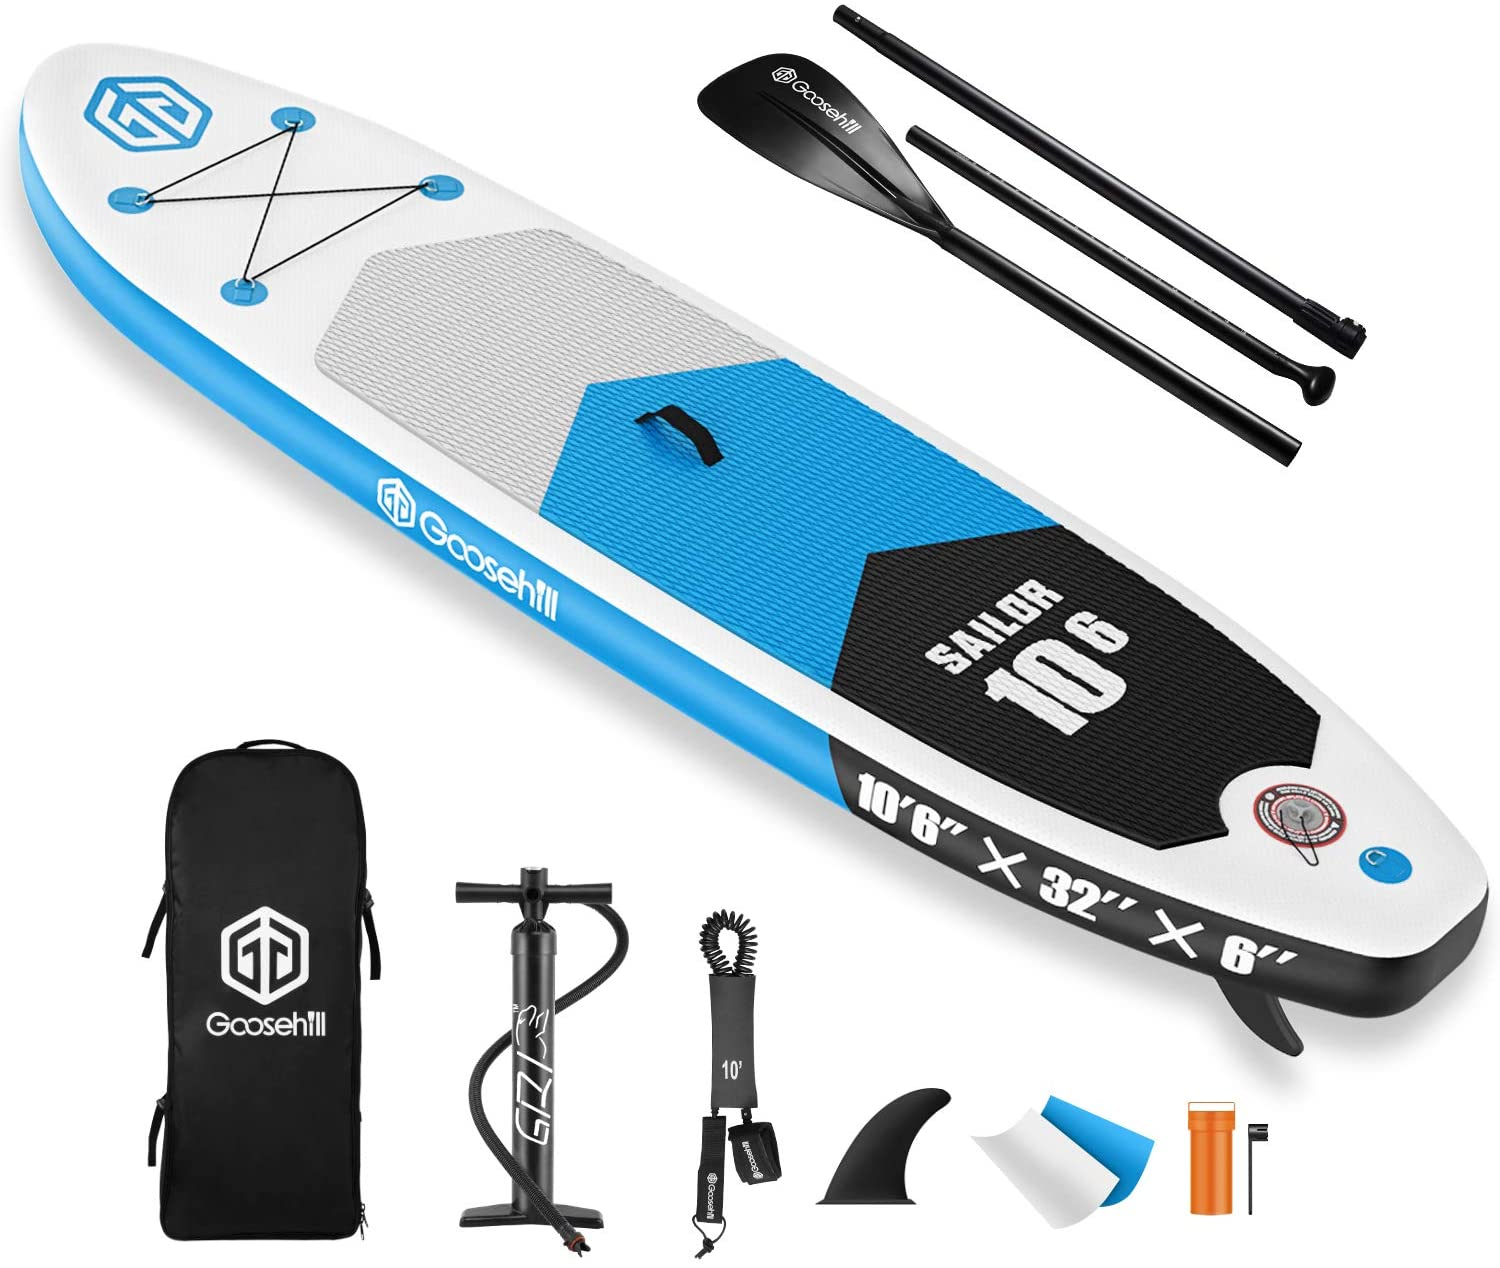 Goosehill Inflatable Stand Up Paddle Board